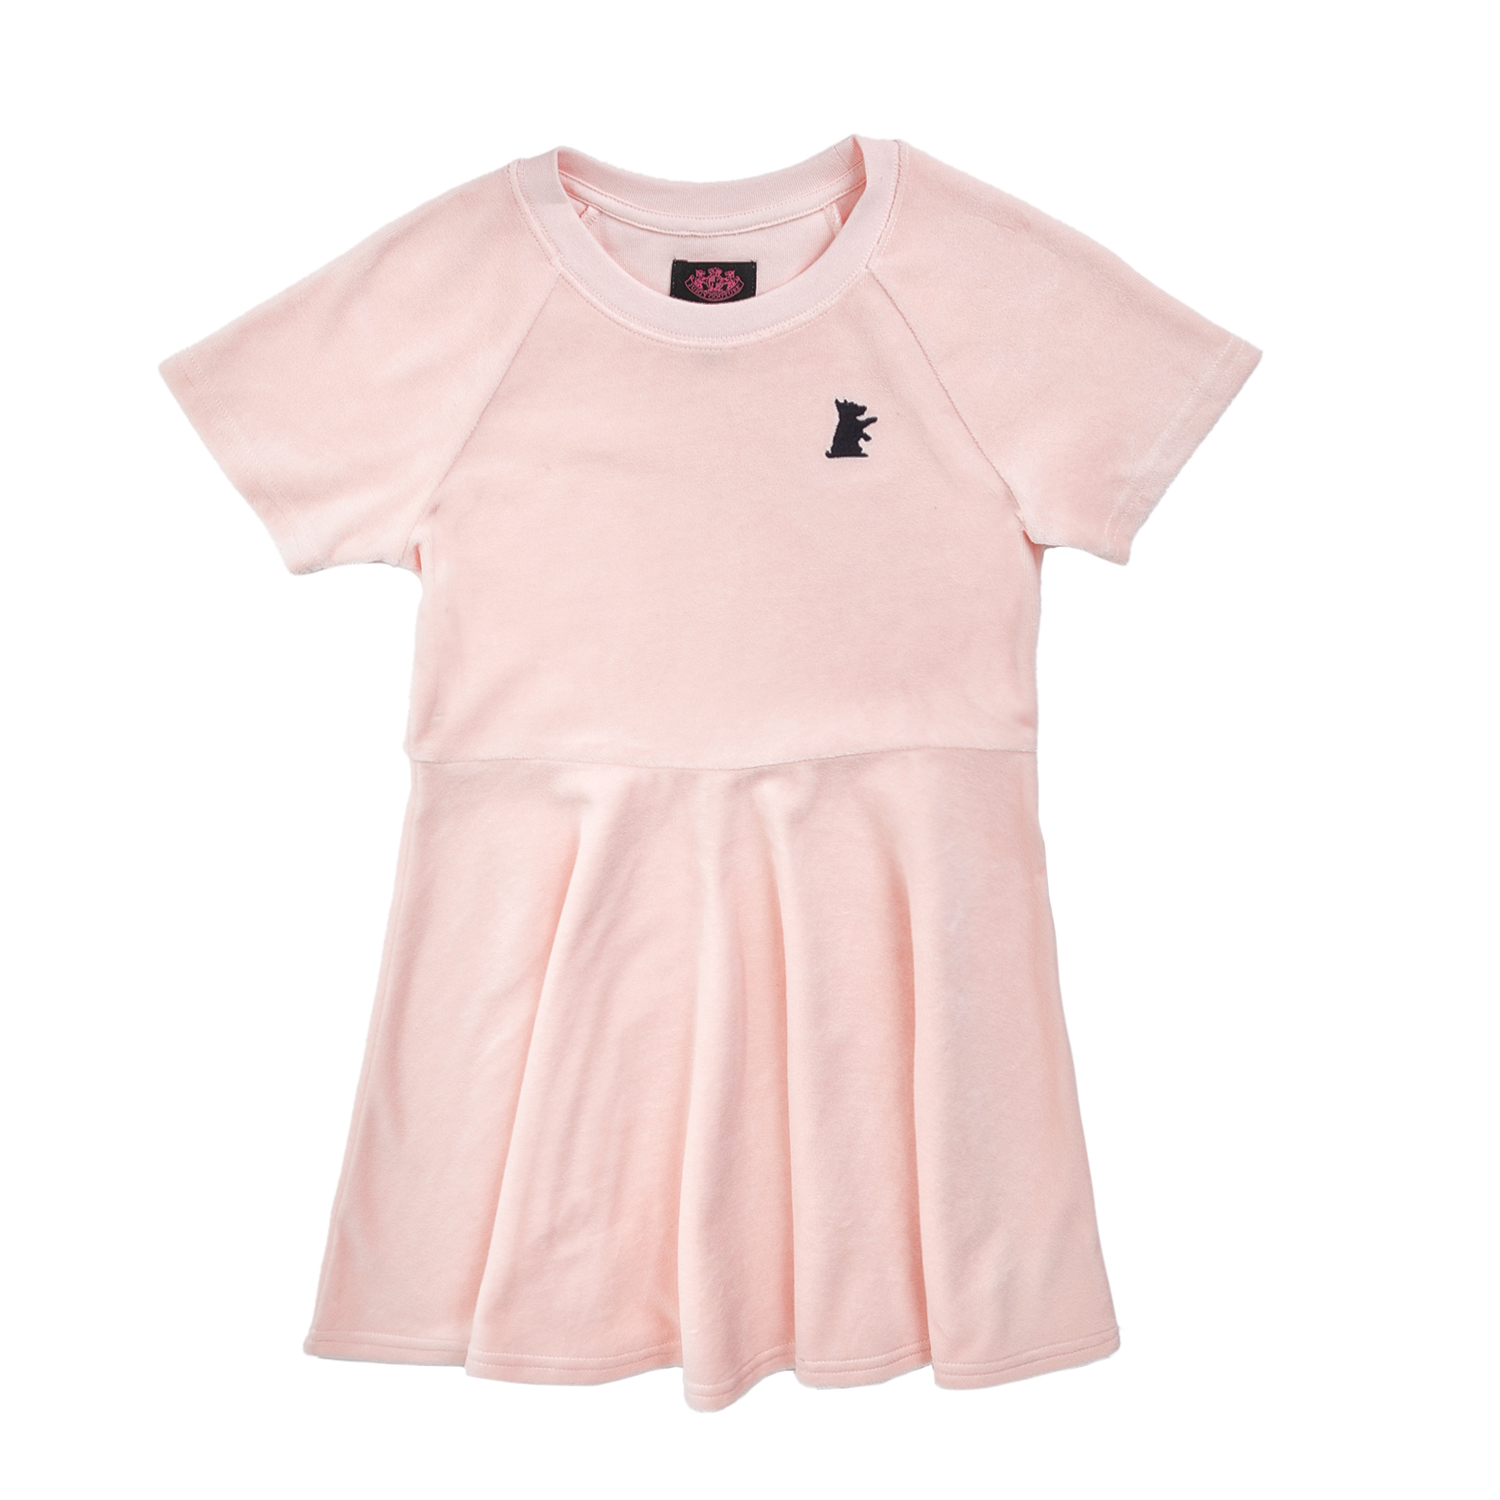 JUICY COUTURE KIDS - Κοριτσίστικο φόρεμα JUICY COUTURE SOLID VLR SKATER ροζ παιδικά girls ρούχα φορέματα